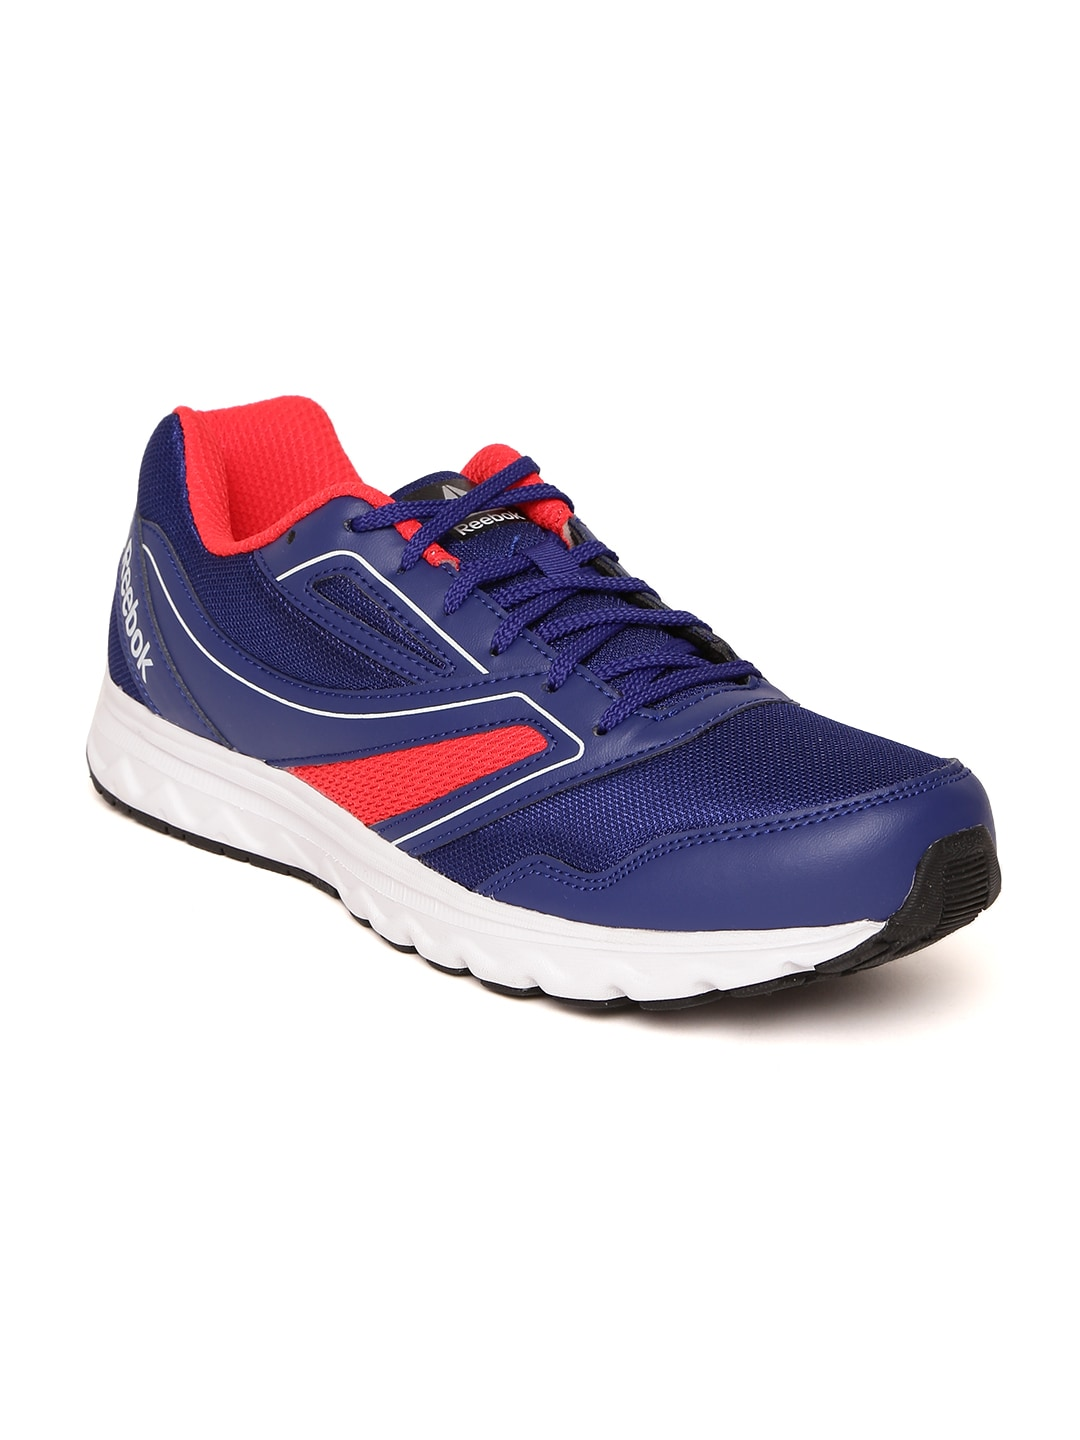 56f239a97b2 Reebok - Buy Reebok Footwear   Apparel In India